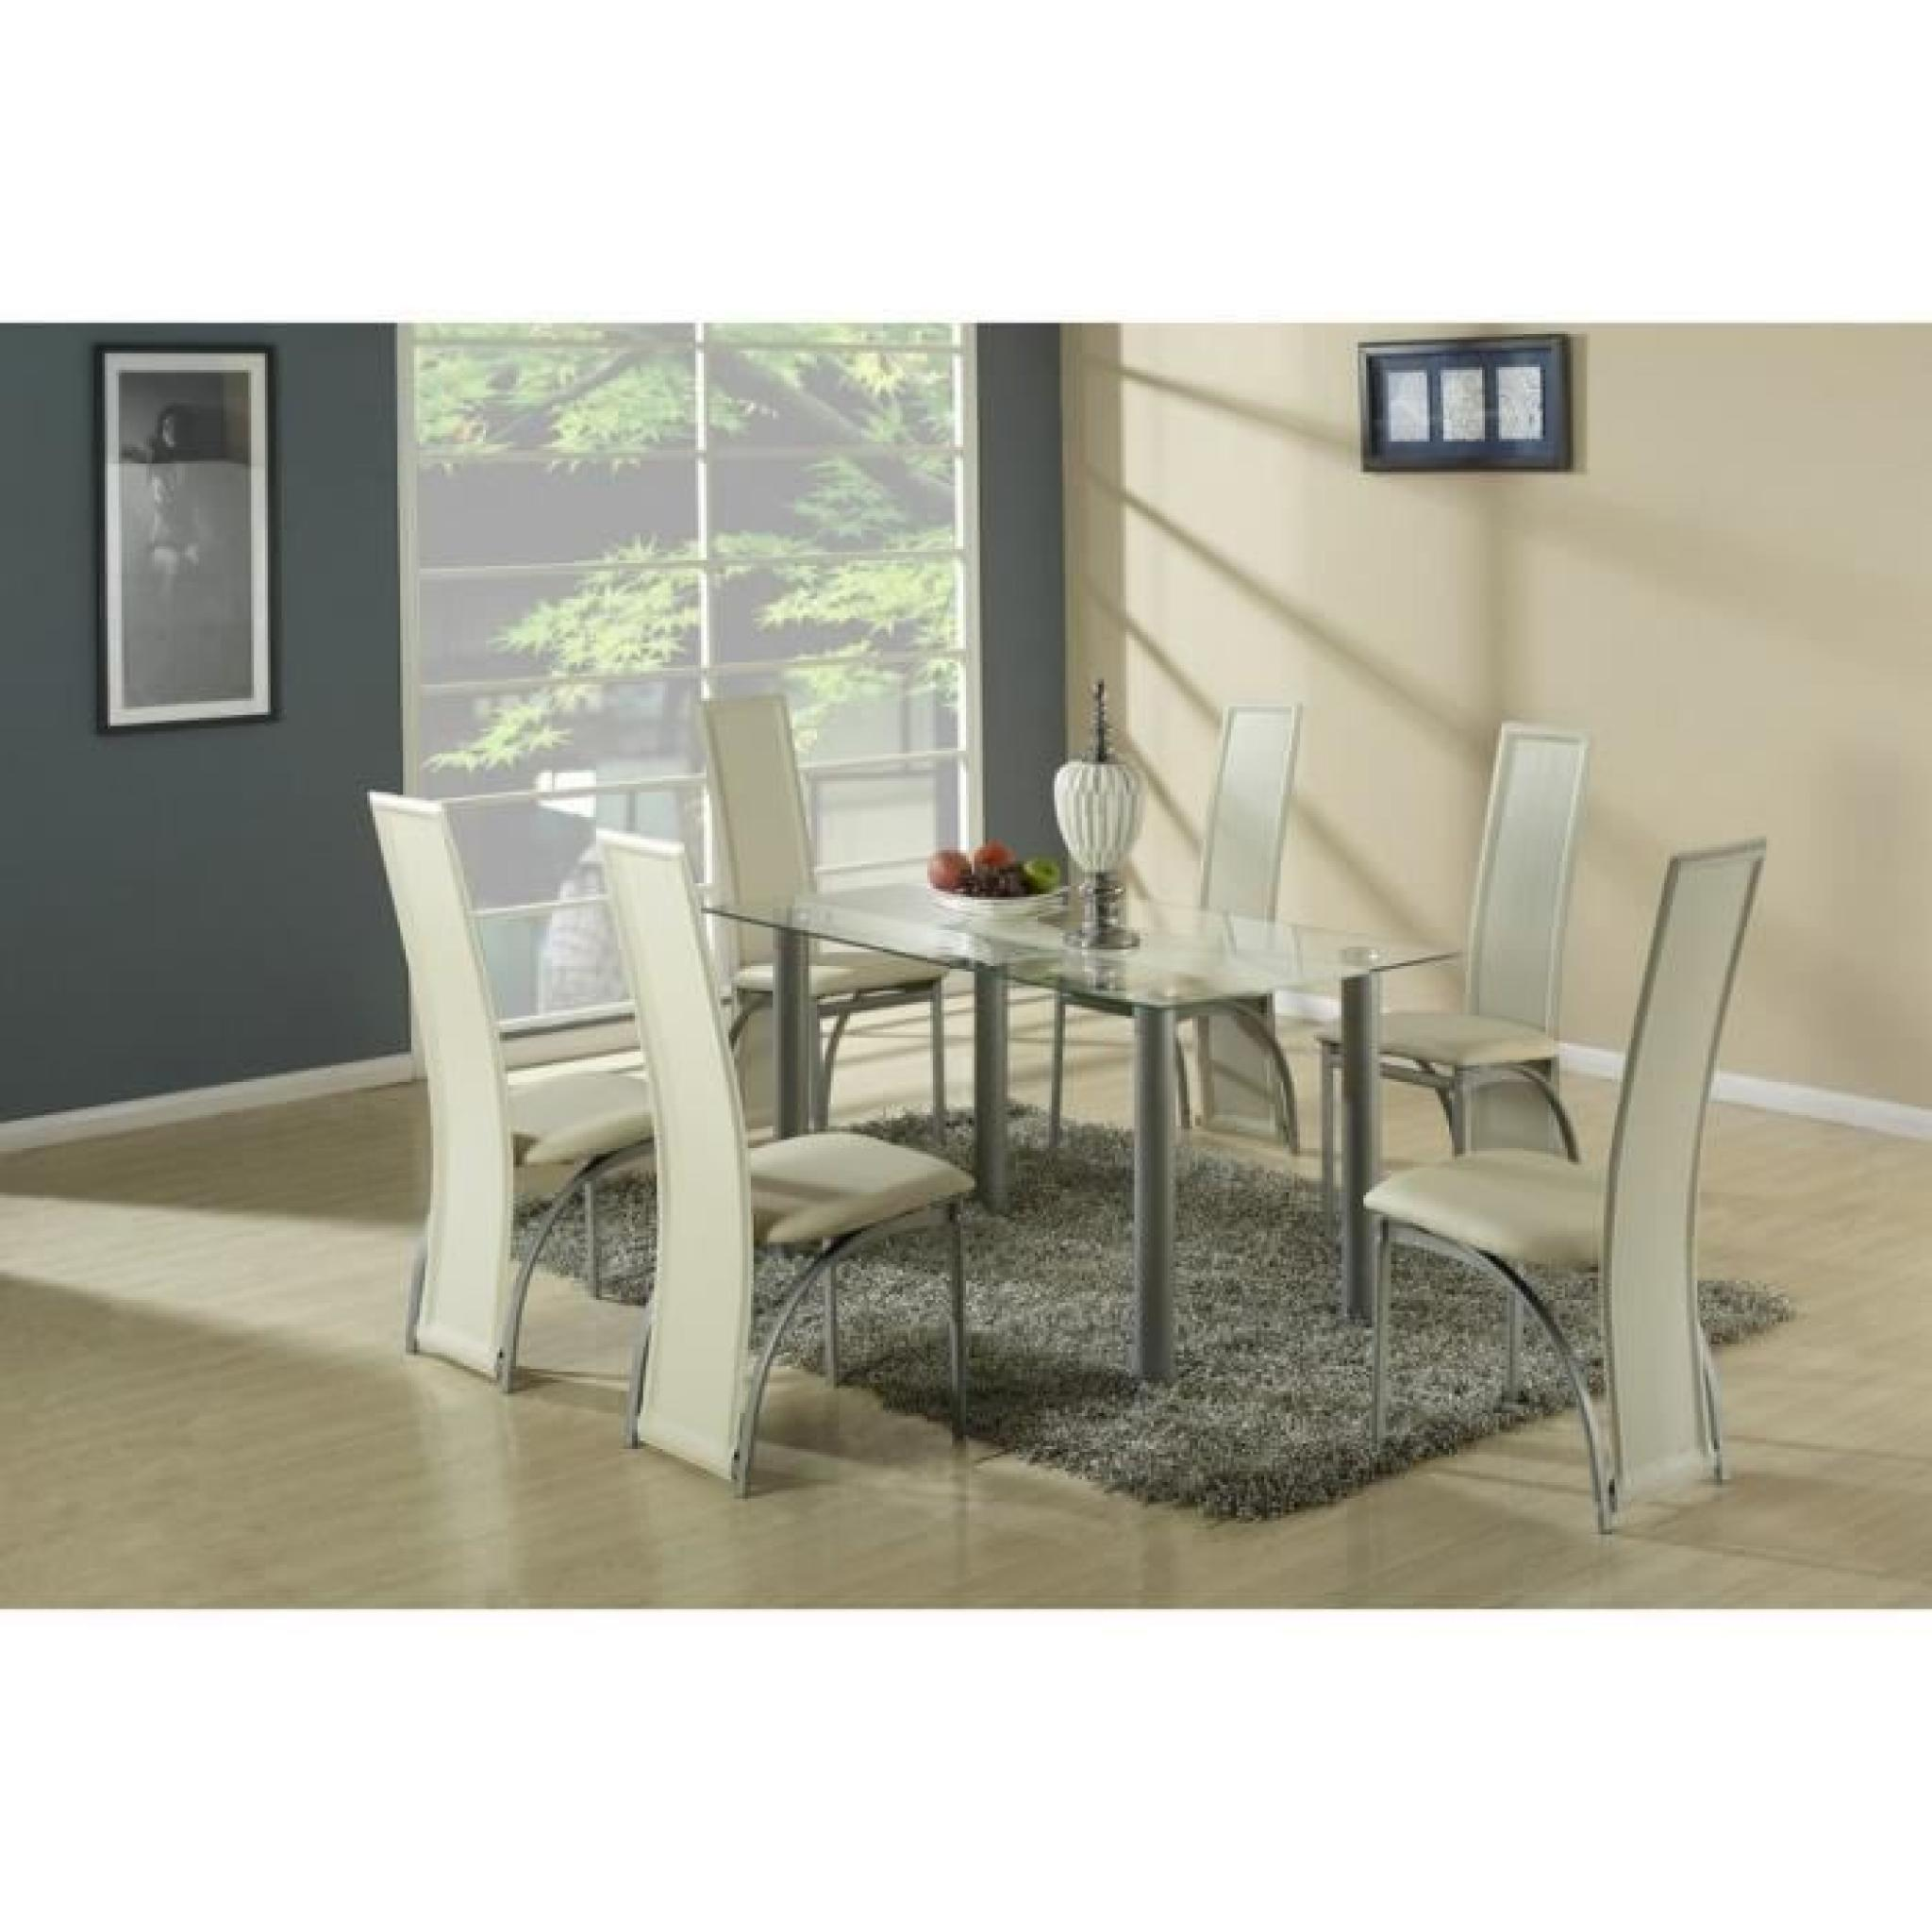 Grande table a manger design table blanche et bois of for Salle a manger en verre design